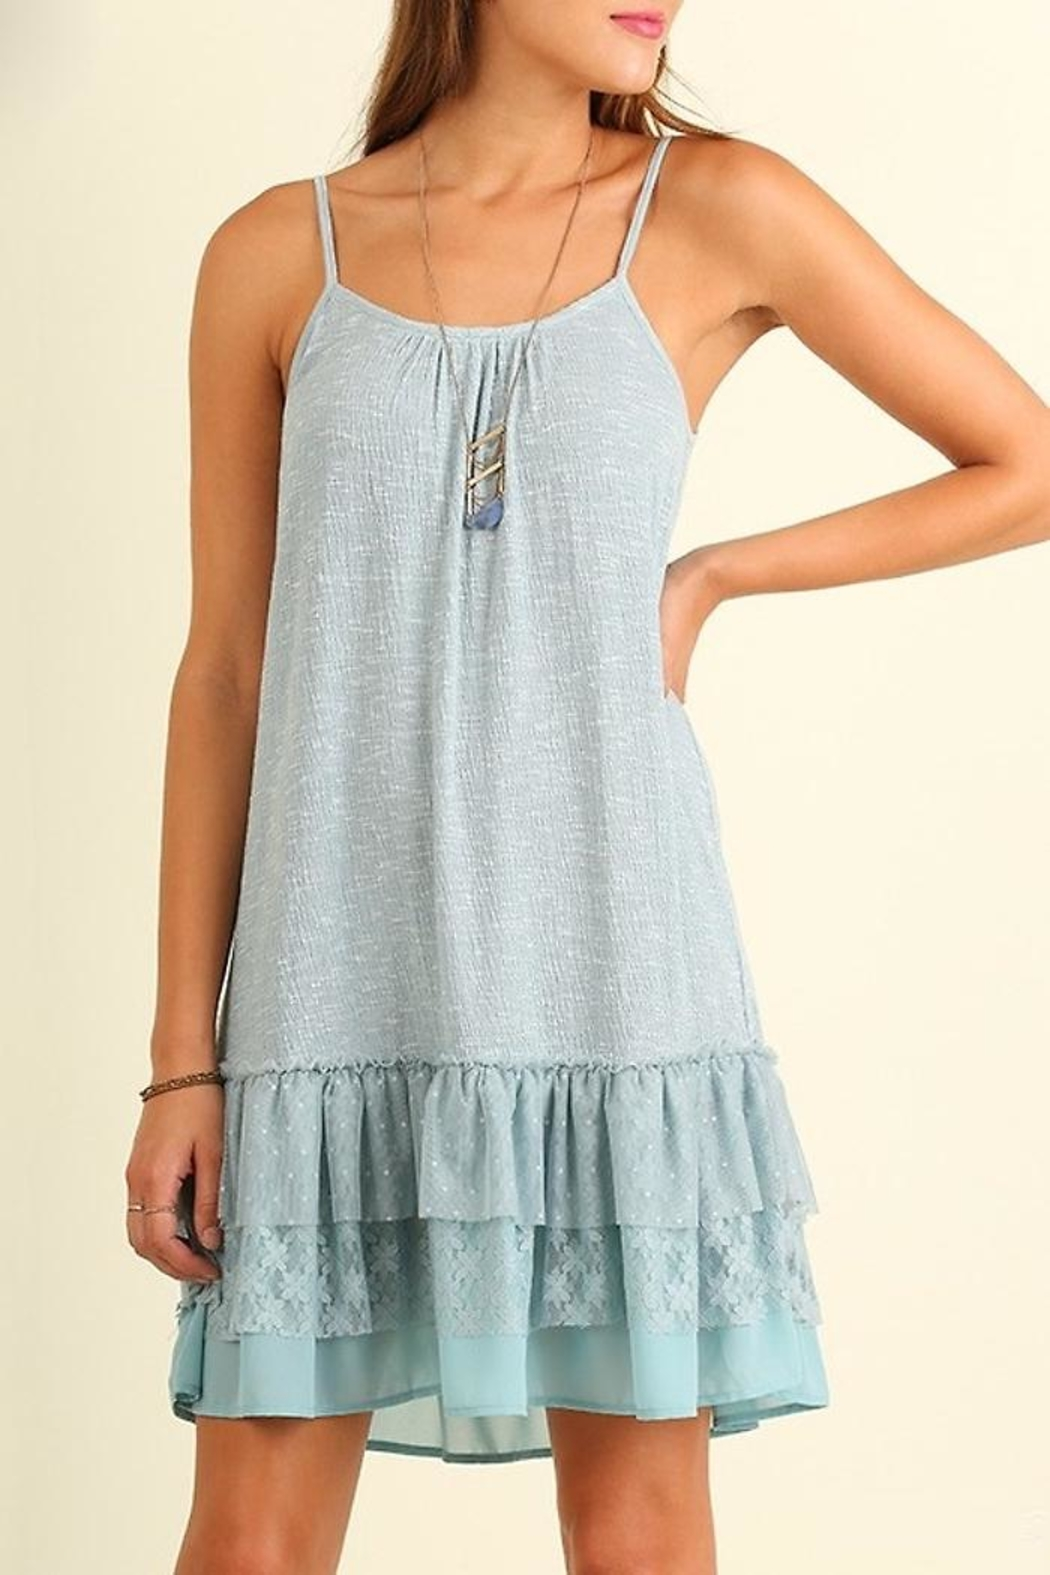 People Outfitter Lace Hem Dress - Back Cropped Image